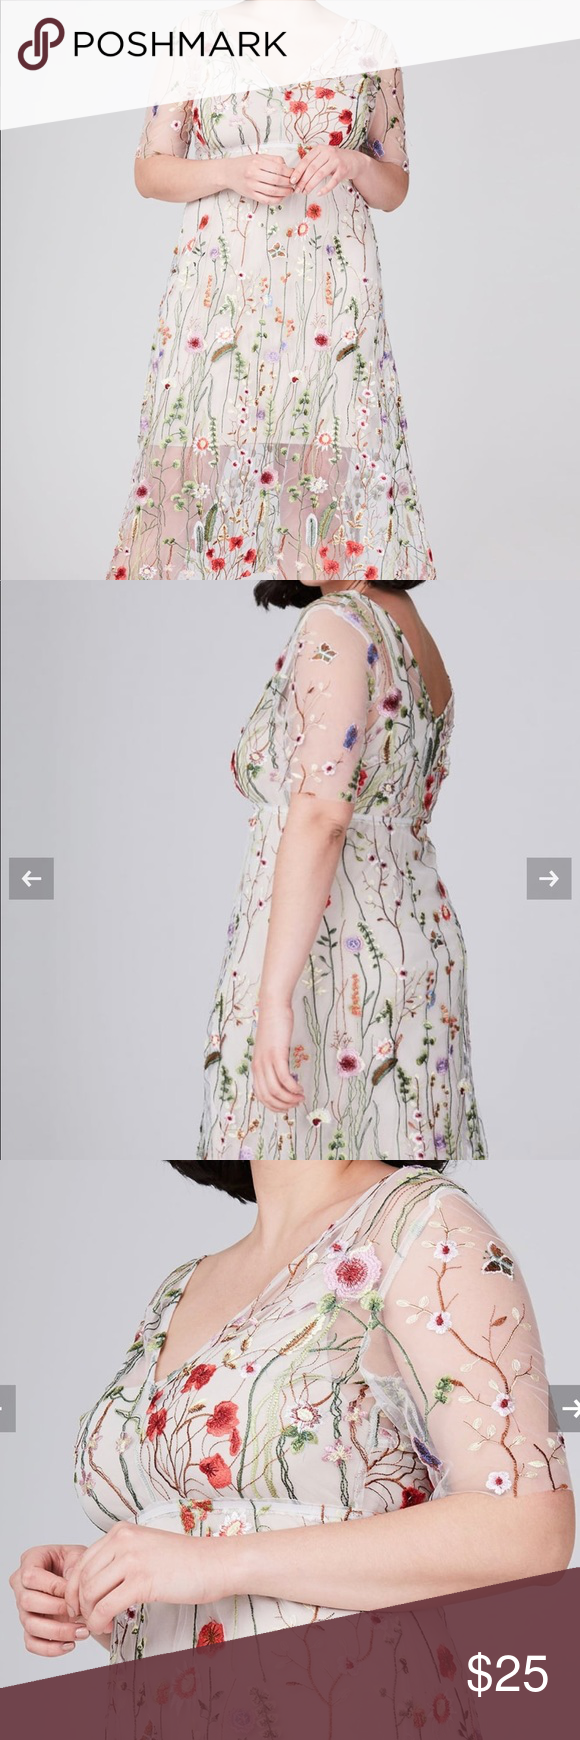 Elvi Floral Net Dress Size US 20/UK 24 Exquisitely embroidered with floral motifs, this delicate dress is the perfect does of whimsical dreaminess. Wear over a nude slip dress. **runs smaller ** size 20 us/U.K. Size 24 Elvi Dresses Midi